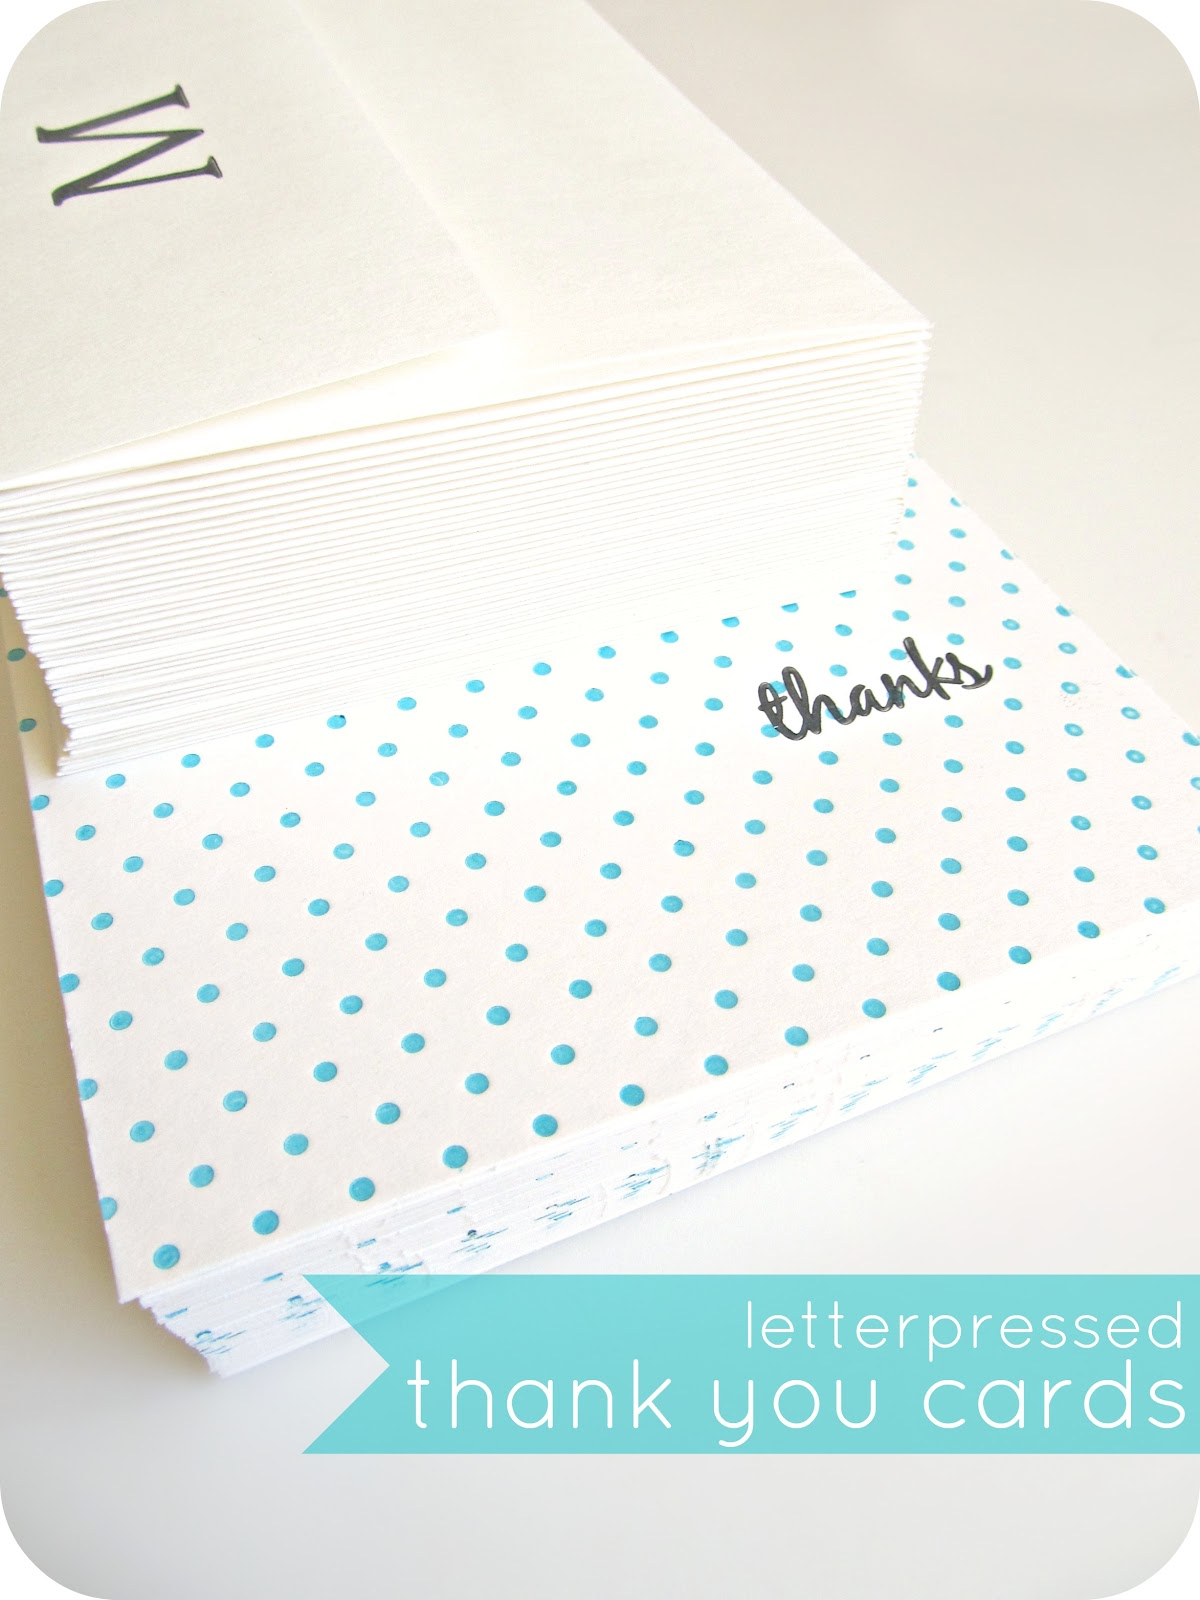 homemade by jill: letterpressed thank you cards (a bridal shower gift)